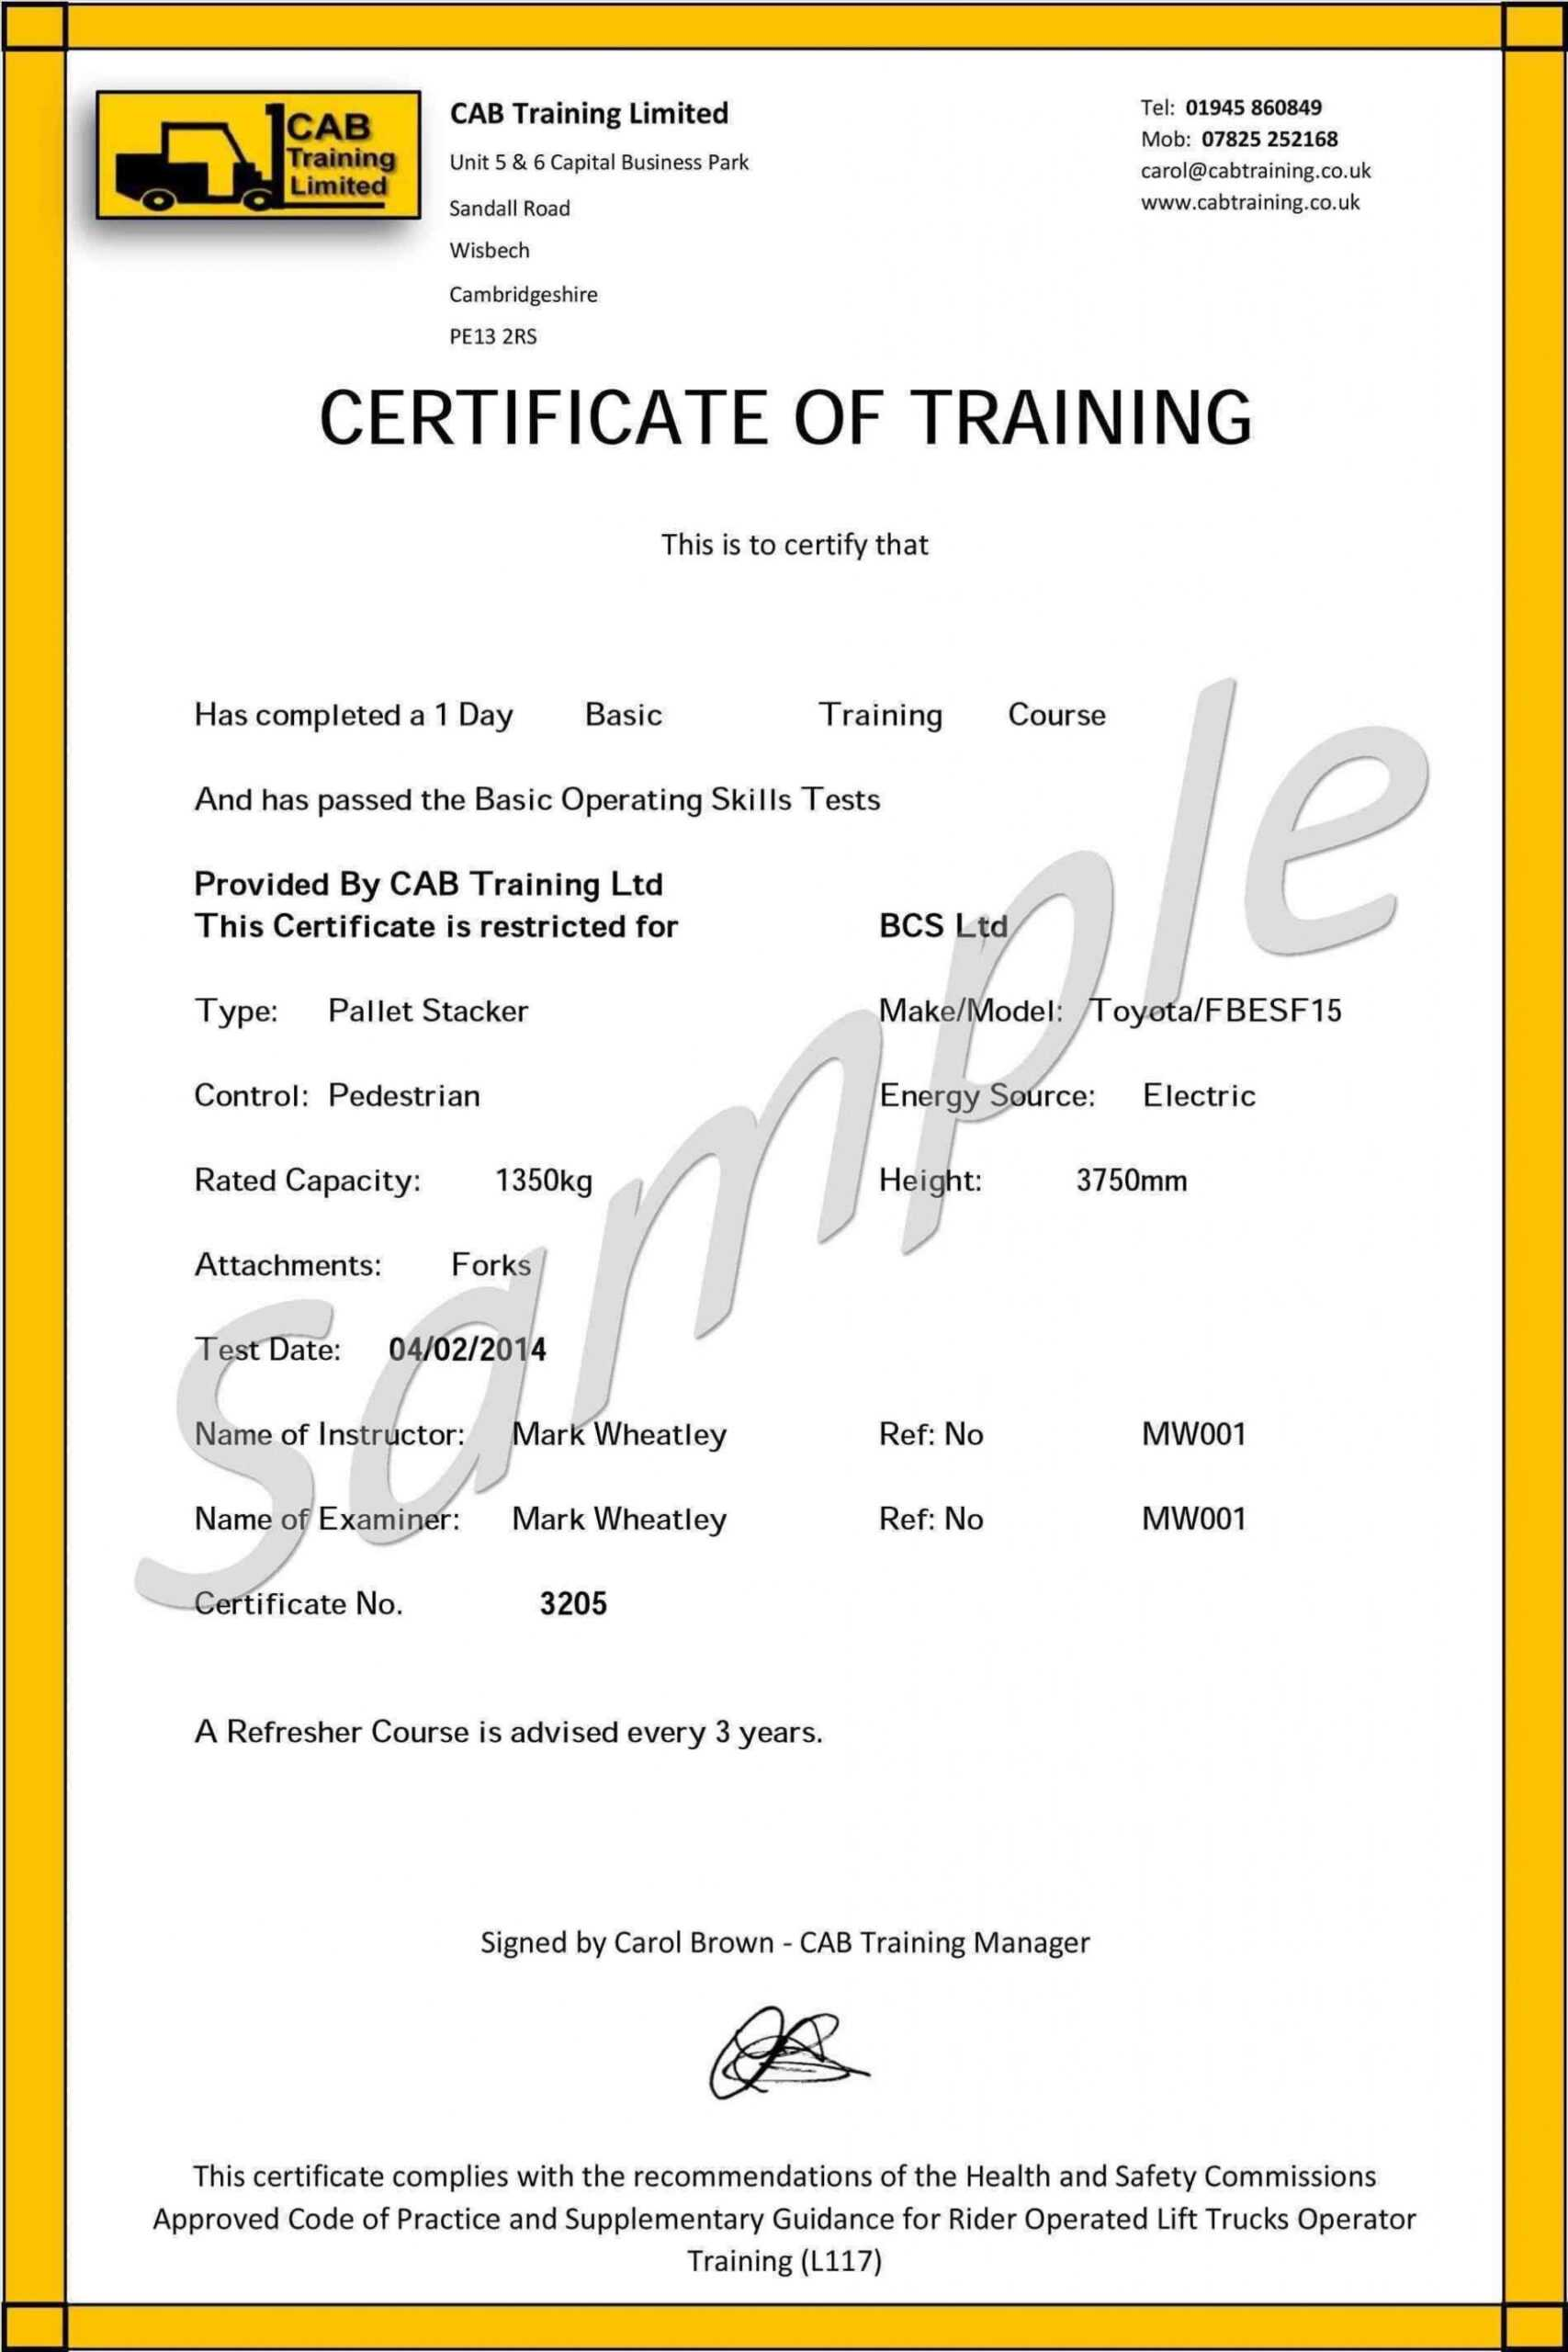 009 Forklift Certification Card Template Free Original Regarding Forklift Certification Card Template